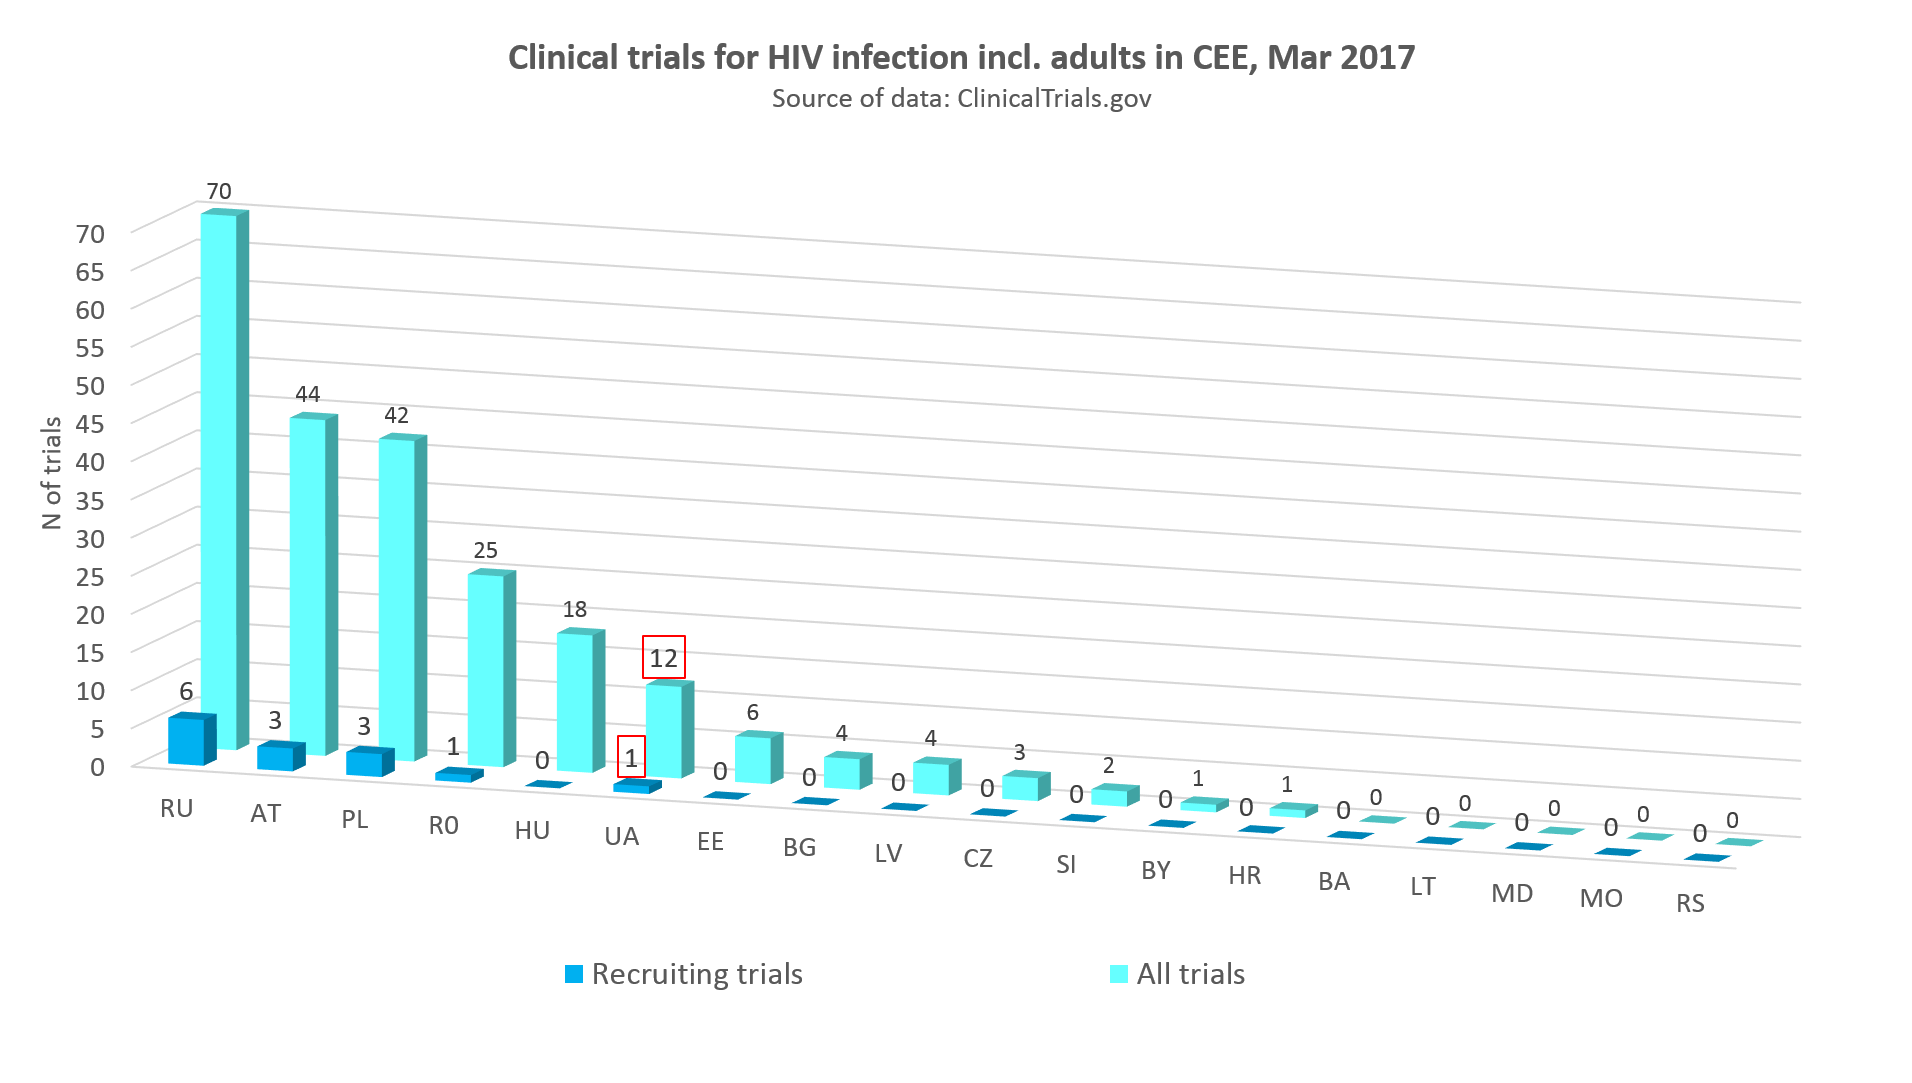 clinical trials for HIV infection incl adults in CEE